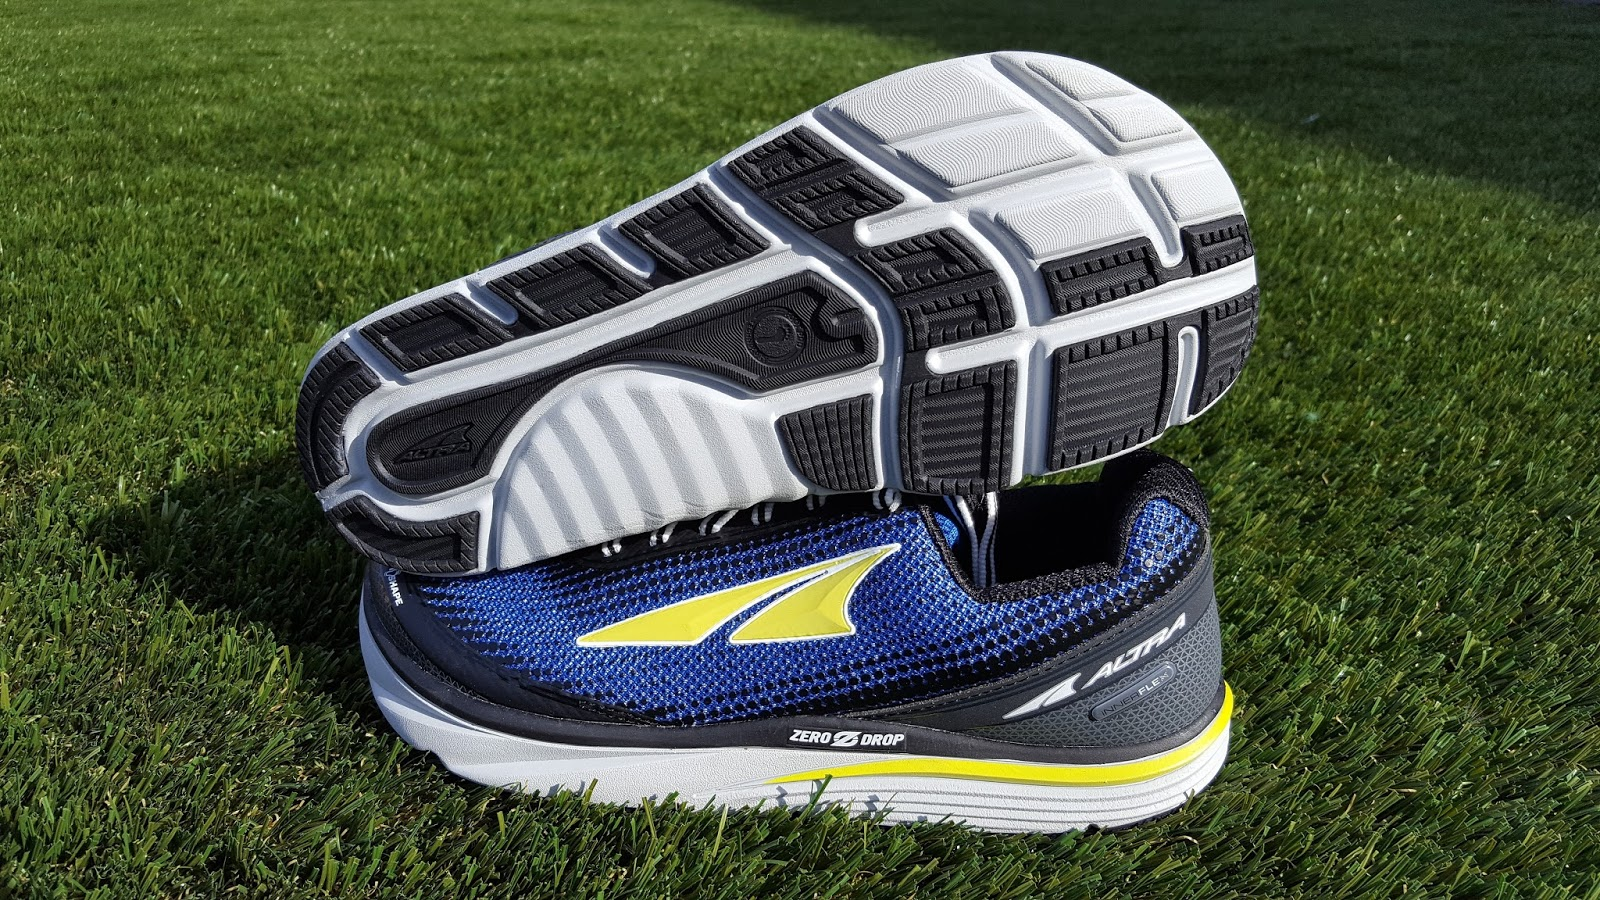 special selection of new lifestyle real quality Running Without Injuries: Altra Torin 3.0 Review